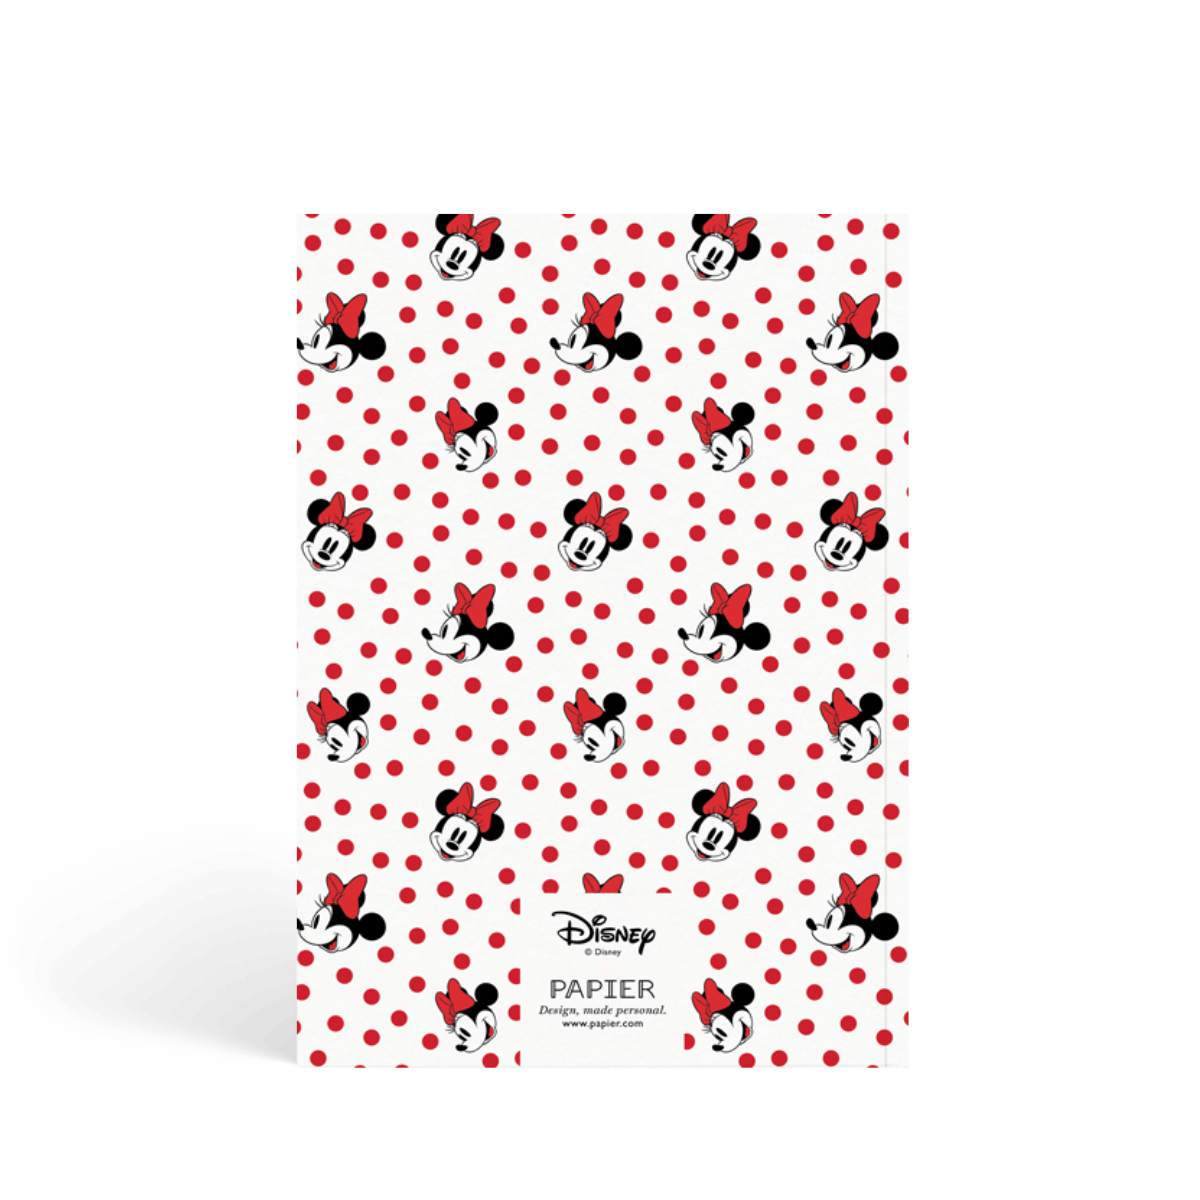 Https%3a%2f%2fwww.papier.com%2fproduct image%2f35917%2f5%2fminnie mouse 8991 arriere 1524568465.png?ixlib=rb 1.1